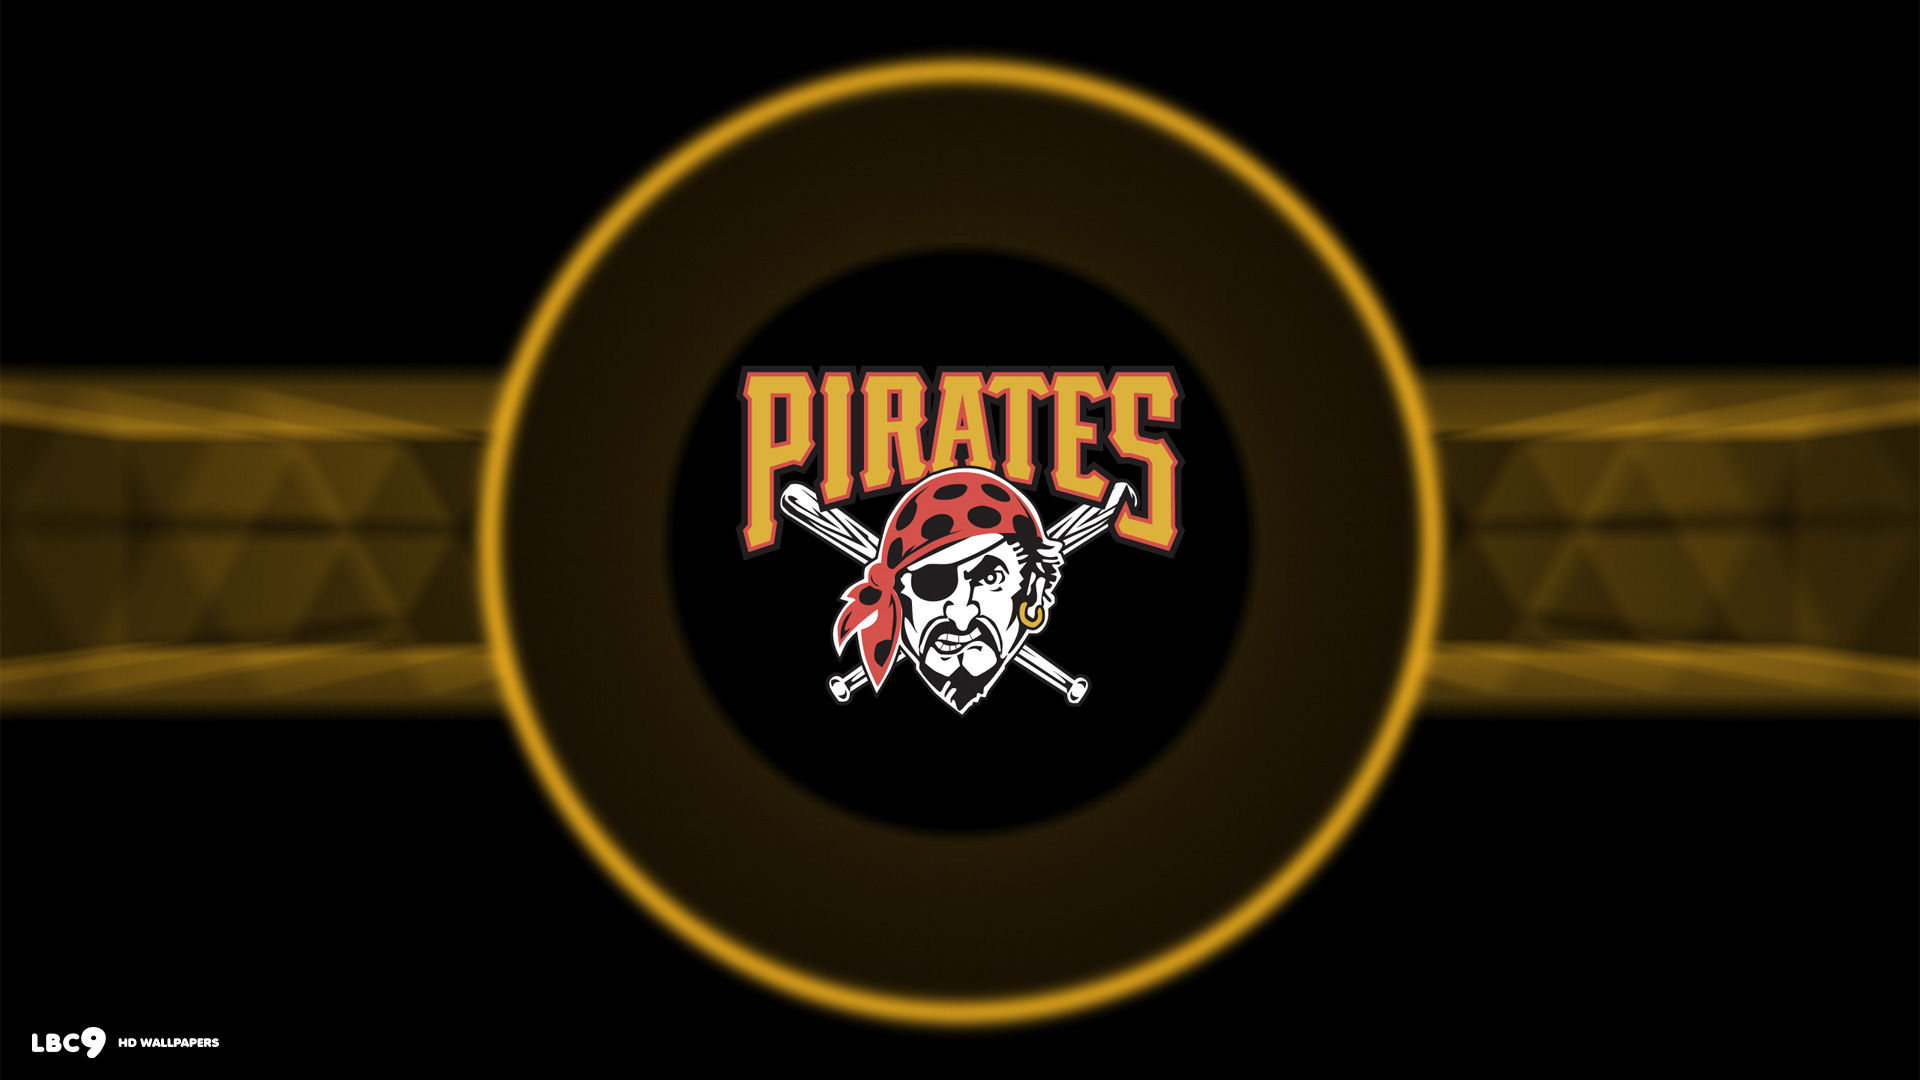 Pittsburgh pirates wallpapers for android screenshot pictures to pin